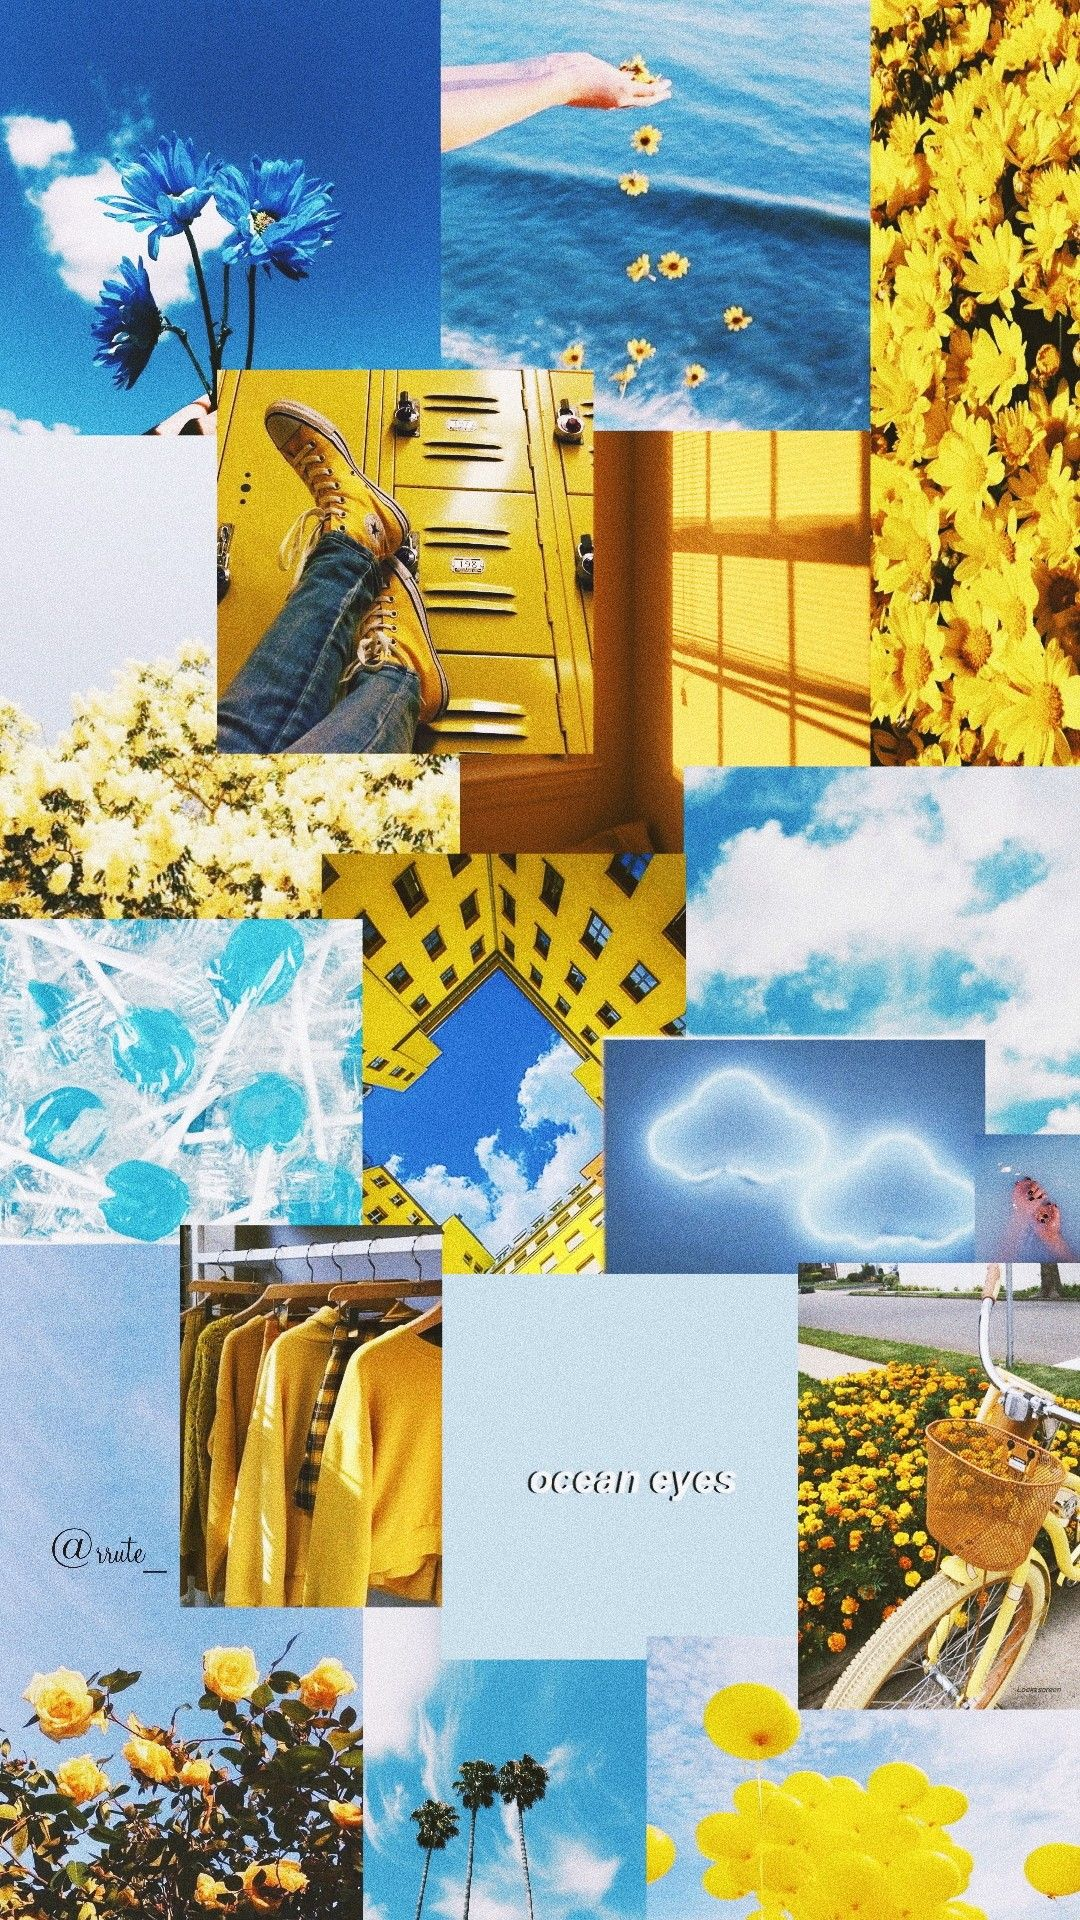 Wallpaper Blue And Yellow In 2020 Aesthetic Iphone Wallpaper Cute Tumblr Wallpaper Iphone Wallpaper Tumblr Aesthetic